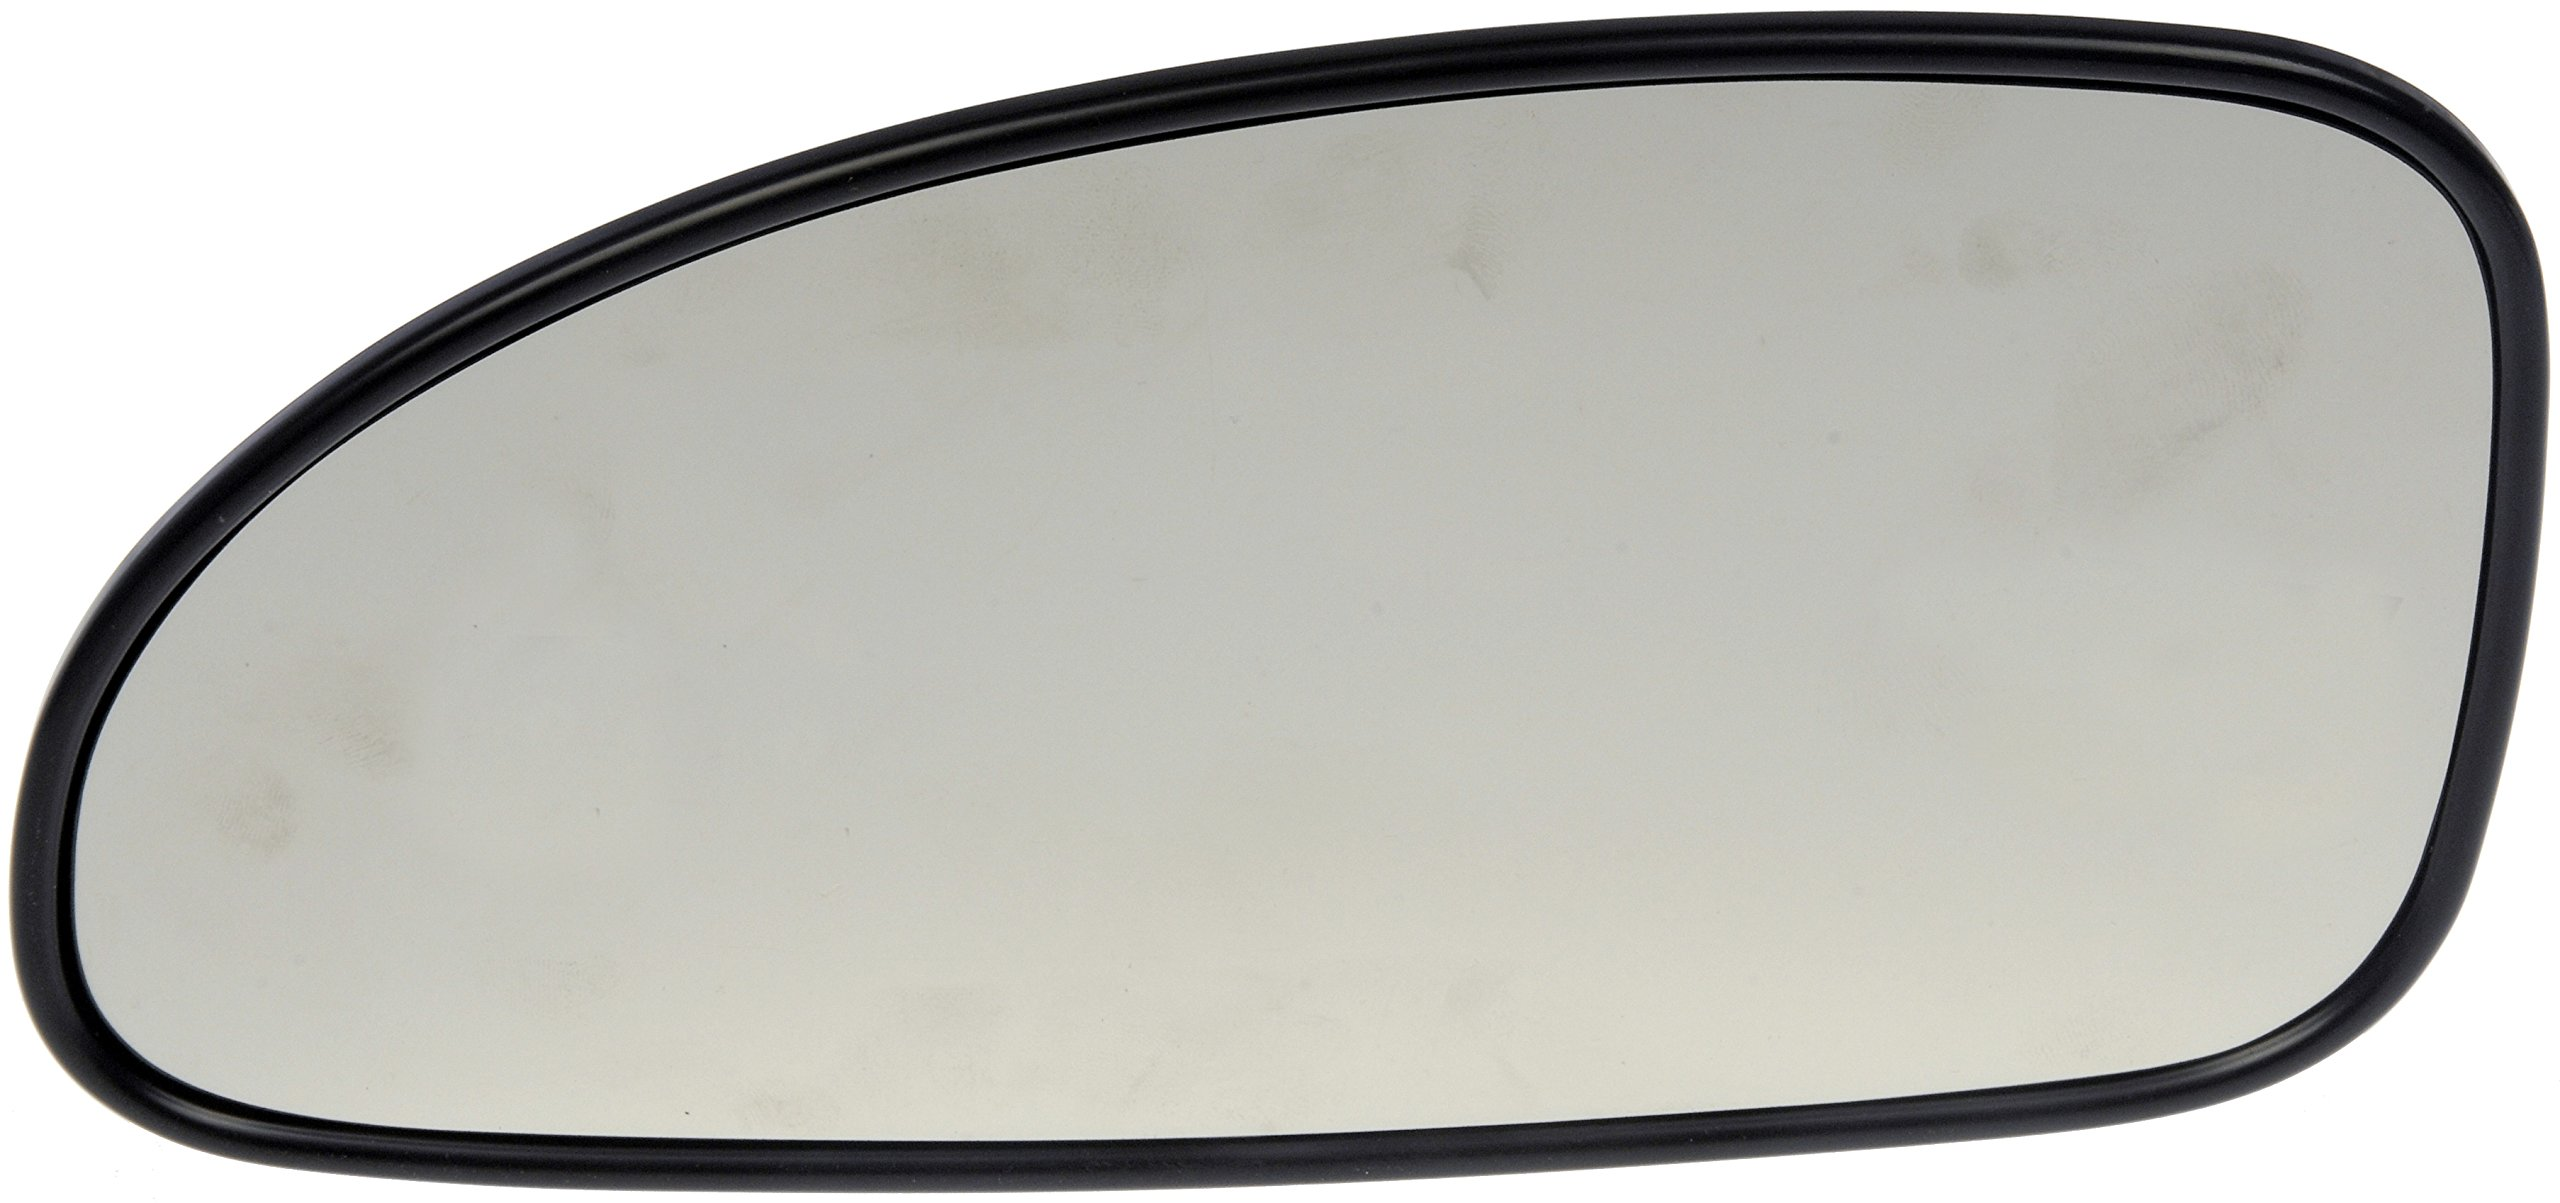 Dorman 56001 Driver Side Non-Heated Plastic Backed Mirror Glass